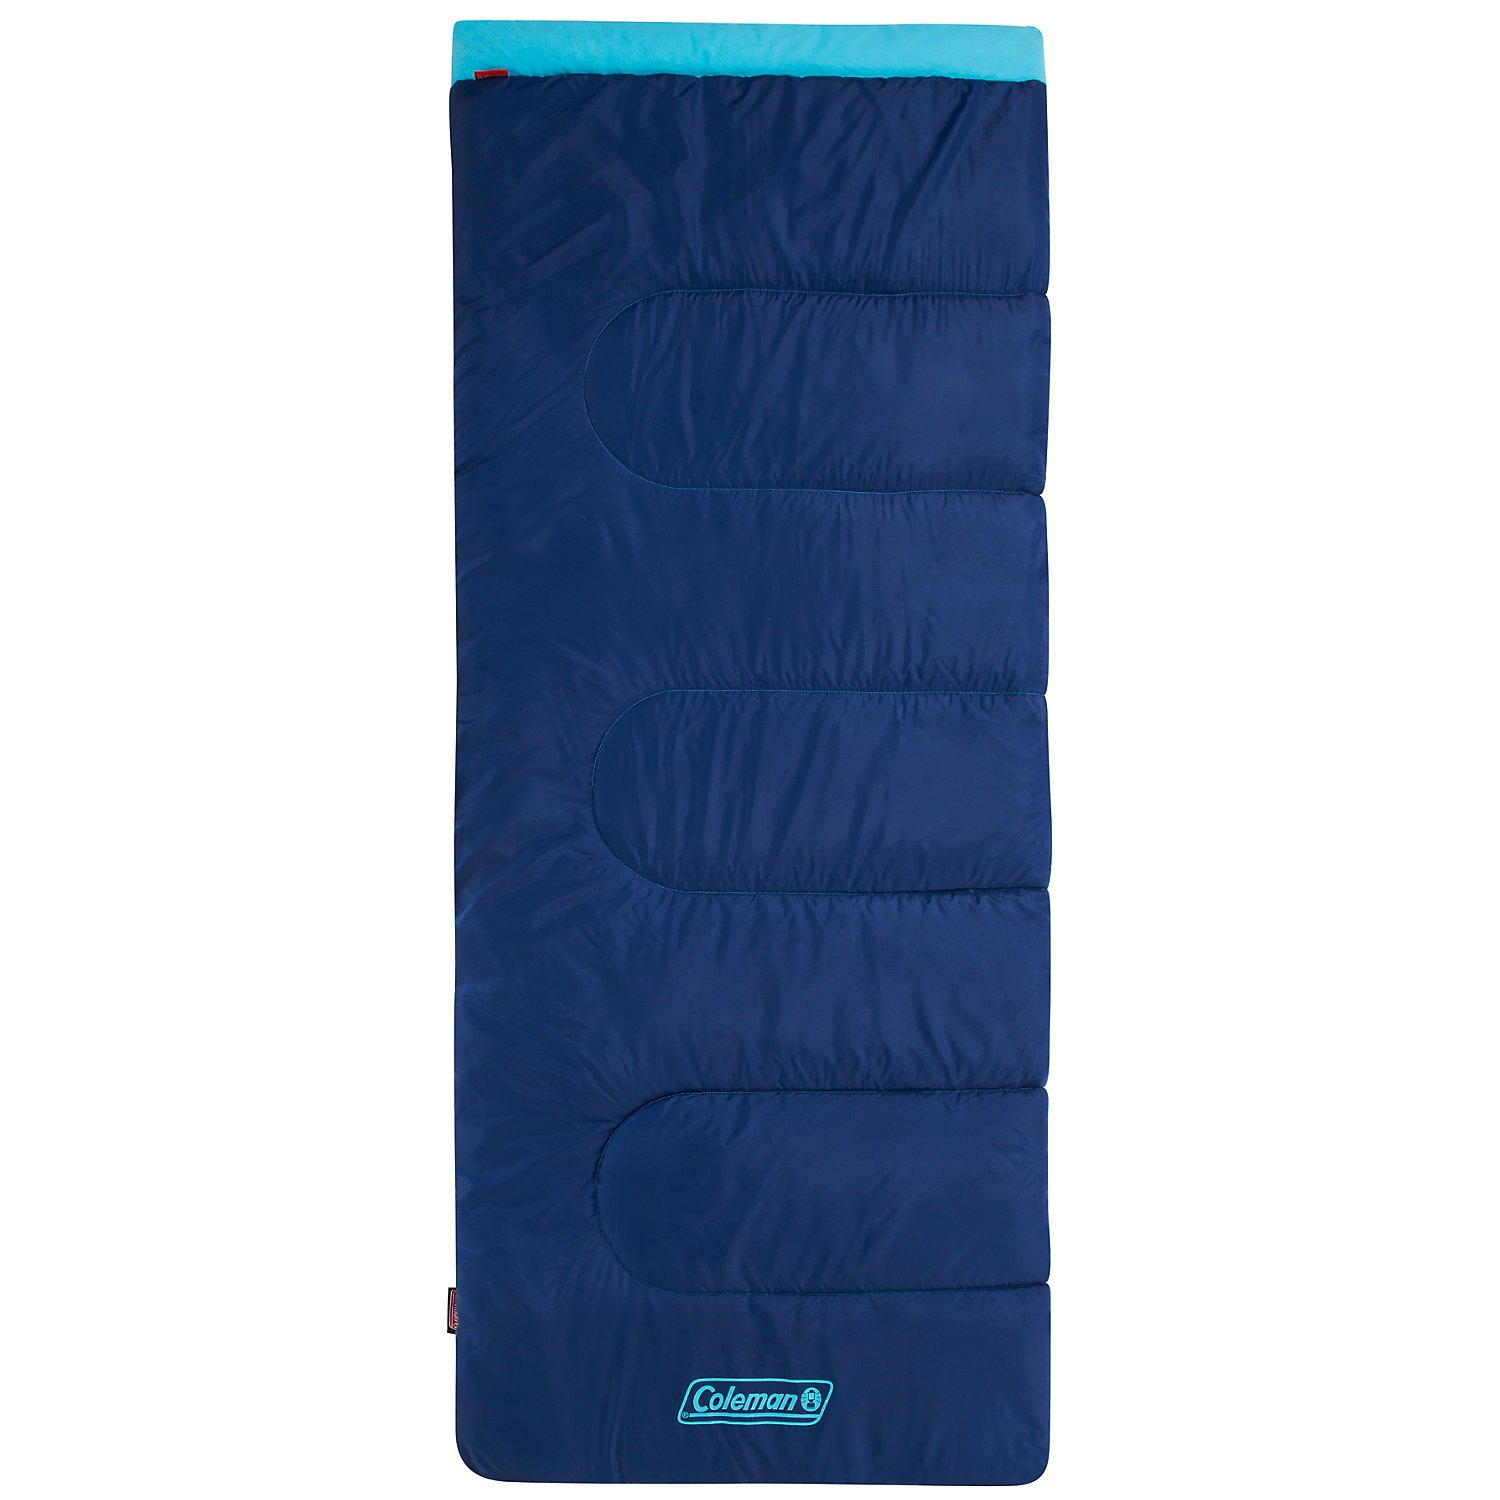 An image of Coleman Heaton Peak 2000020996 Cotton Flannel Sleeping Bag